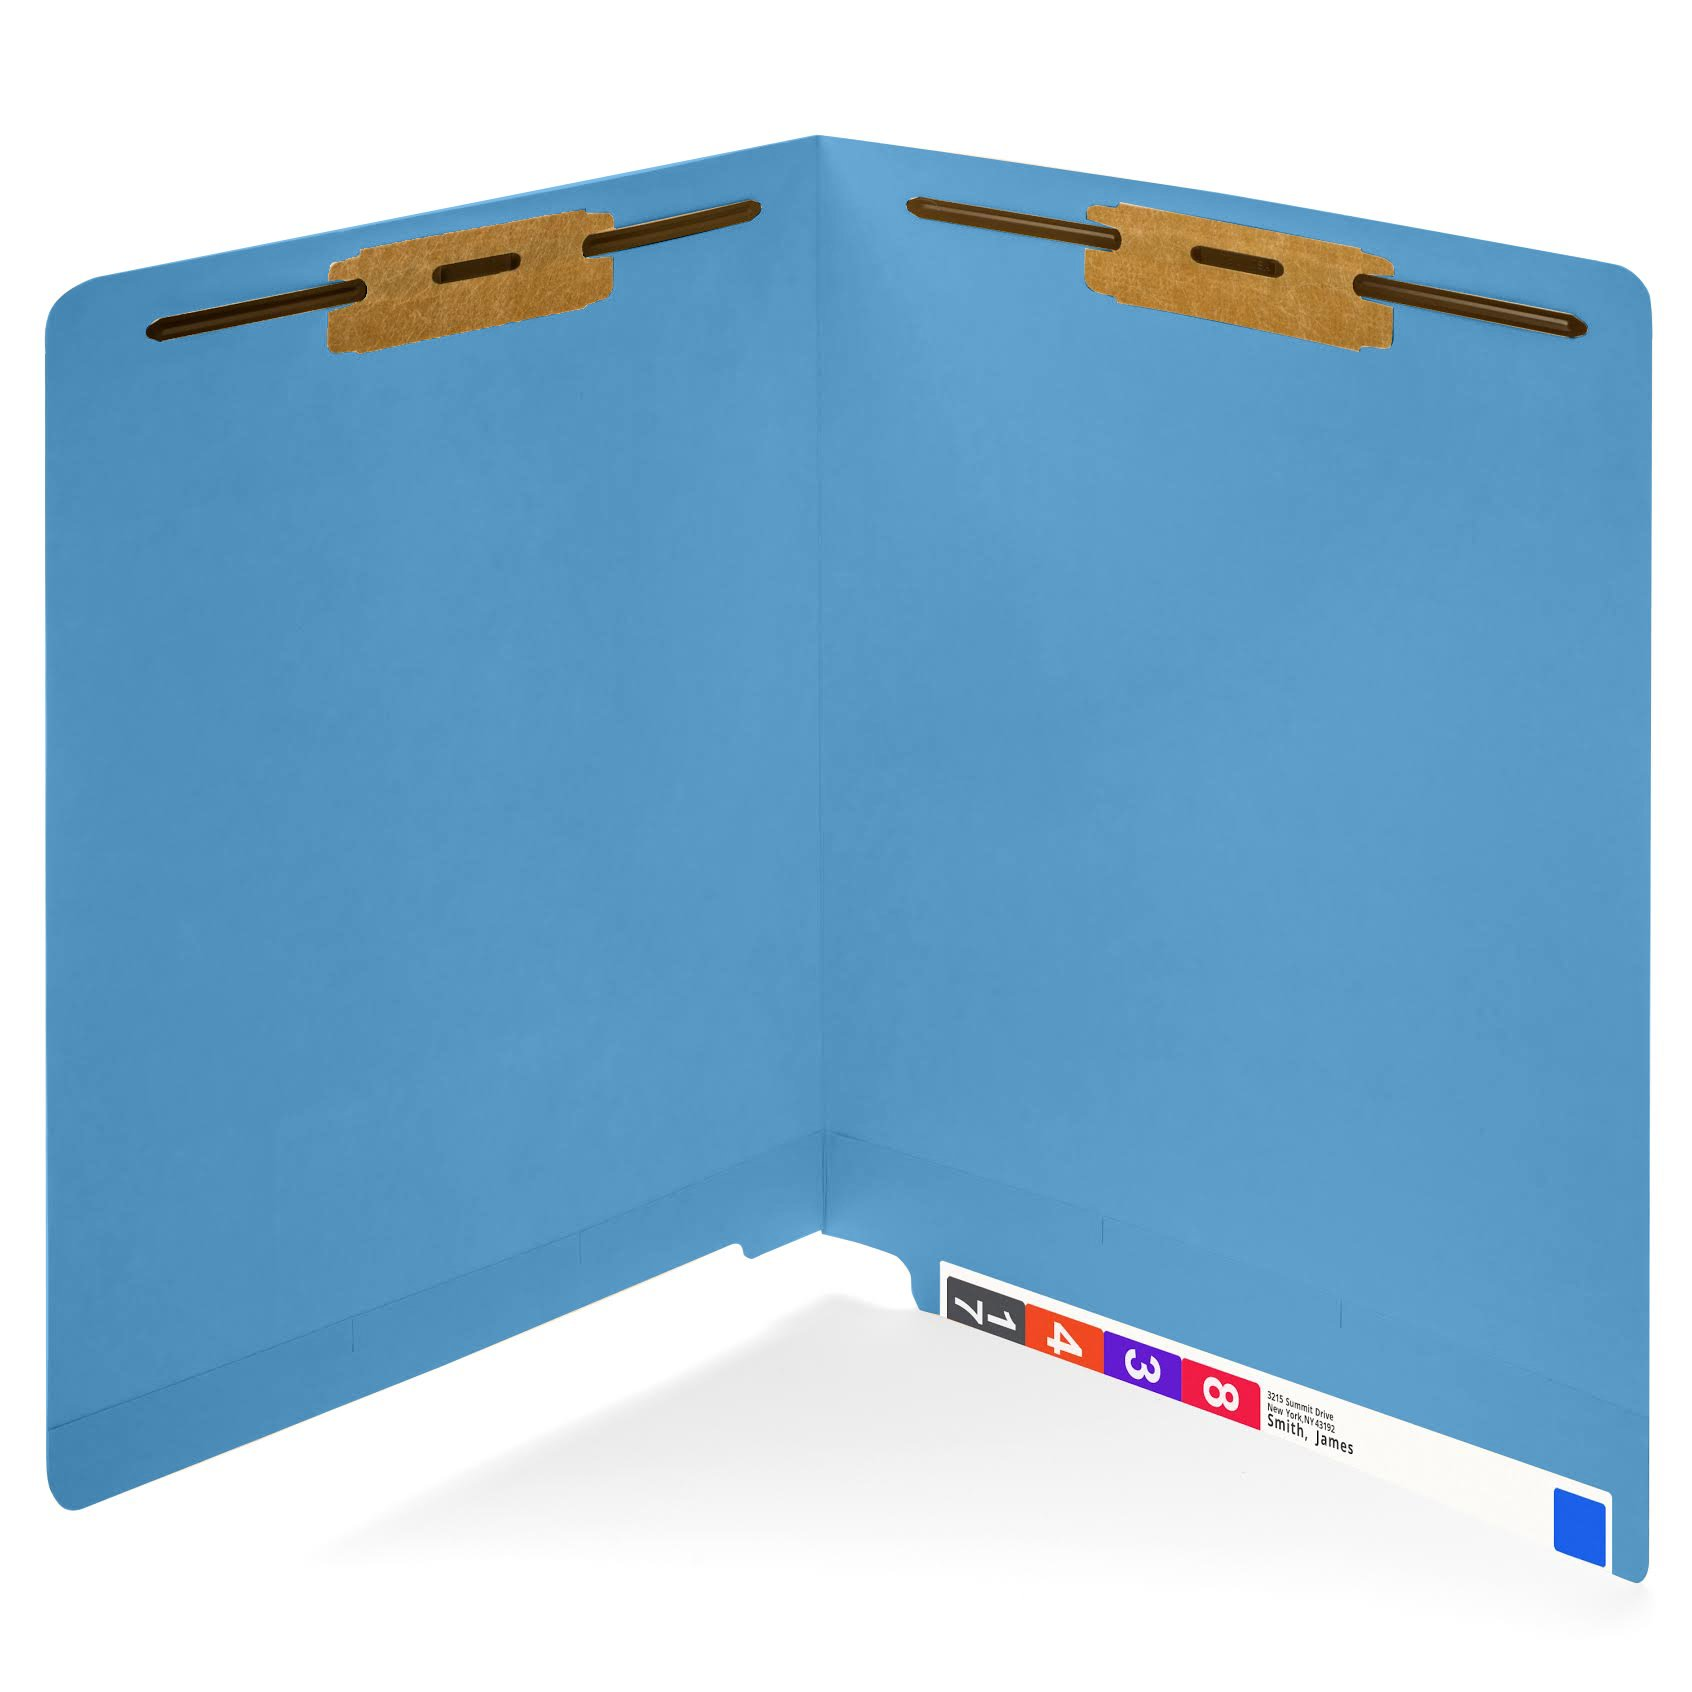 50 Blue End tab Fastener File Folders- Reinforced Straight Cut tab- Durable 2 Prongs designed to organize standard medical files, receipts, office reports, and more – Letter Size, Blue, 50 PACK